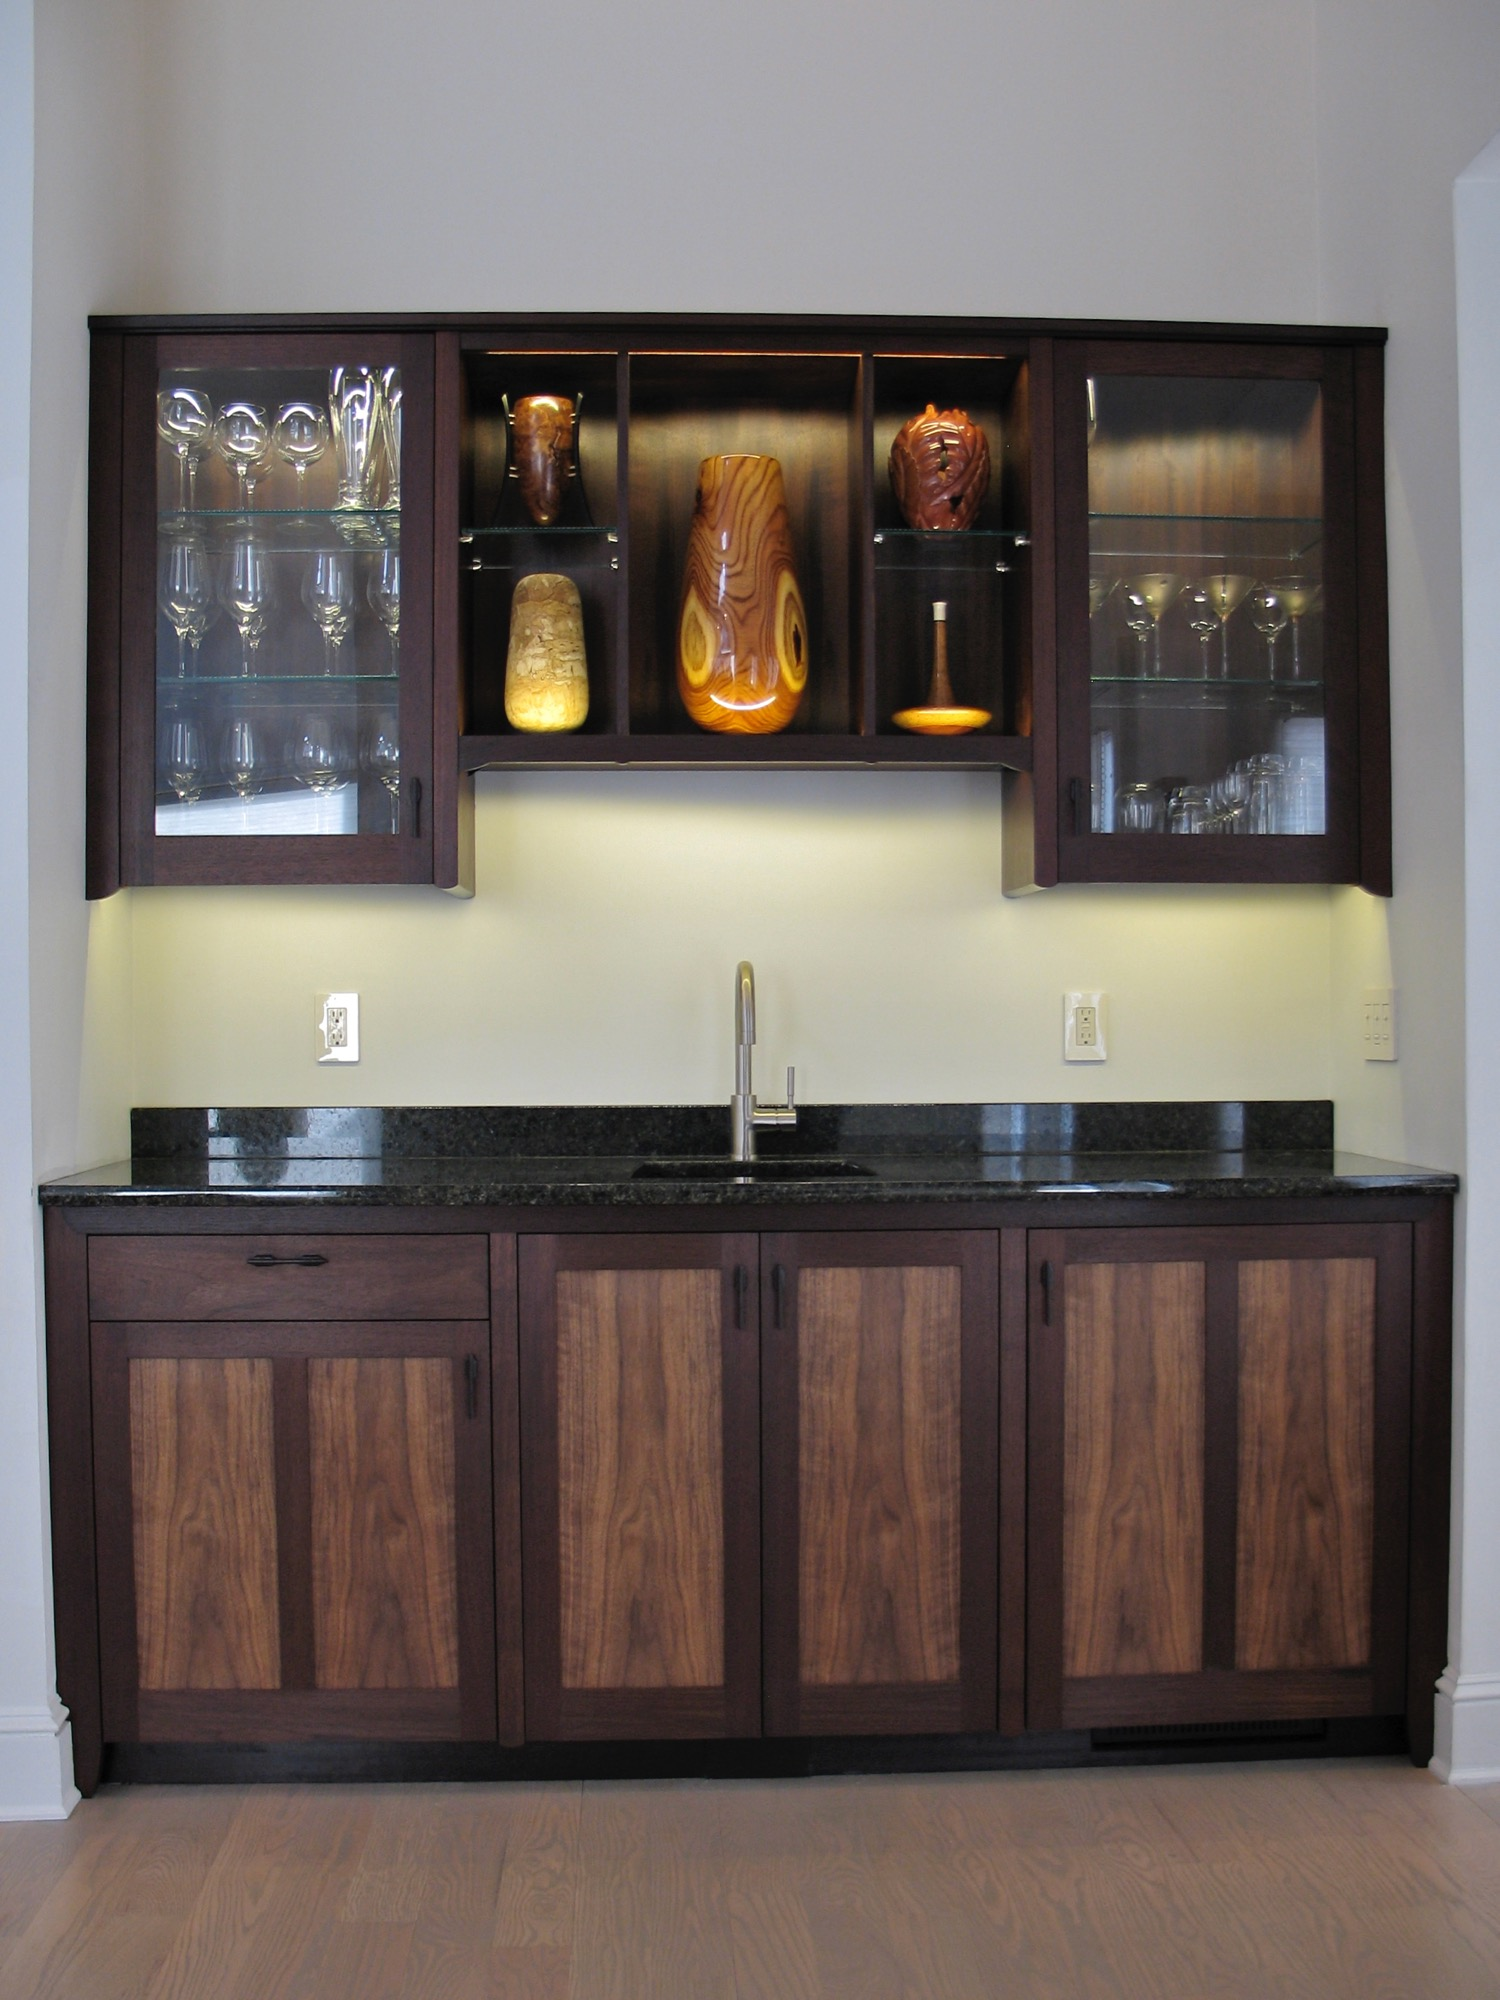 Ken's wetbar and dislplay- nogal, figured walnut, granite